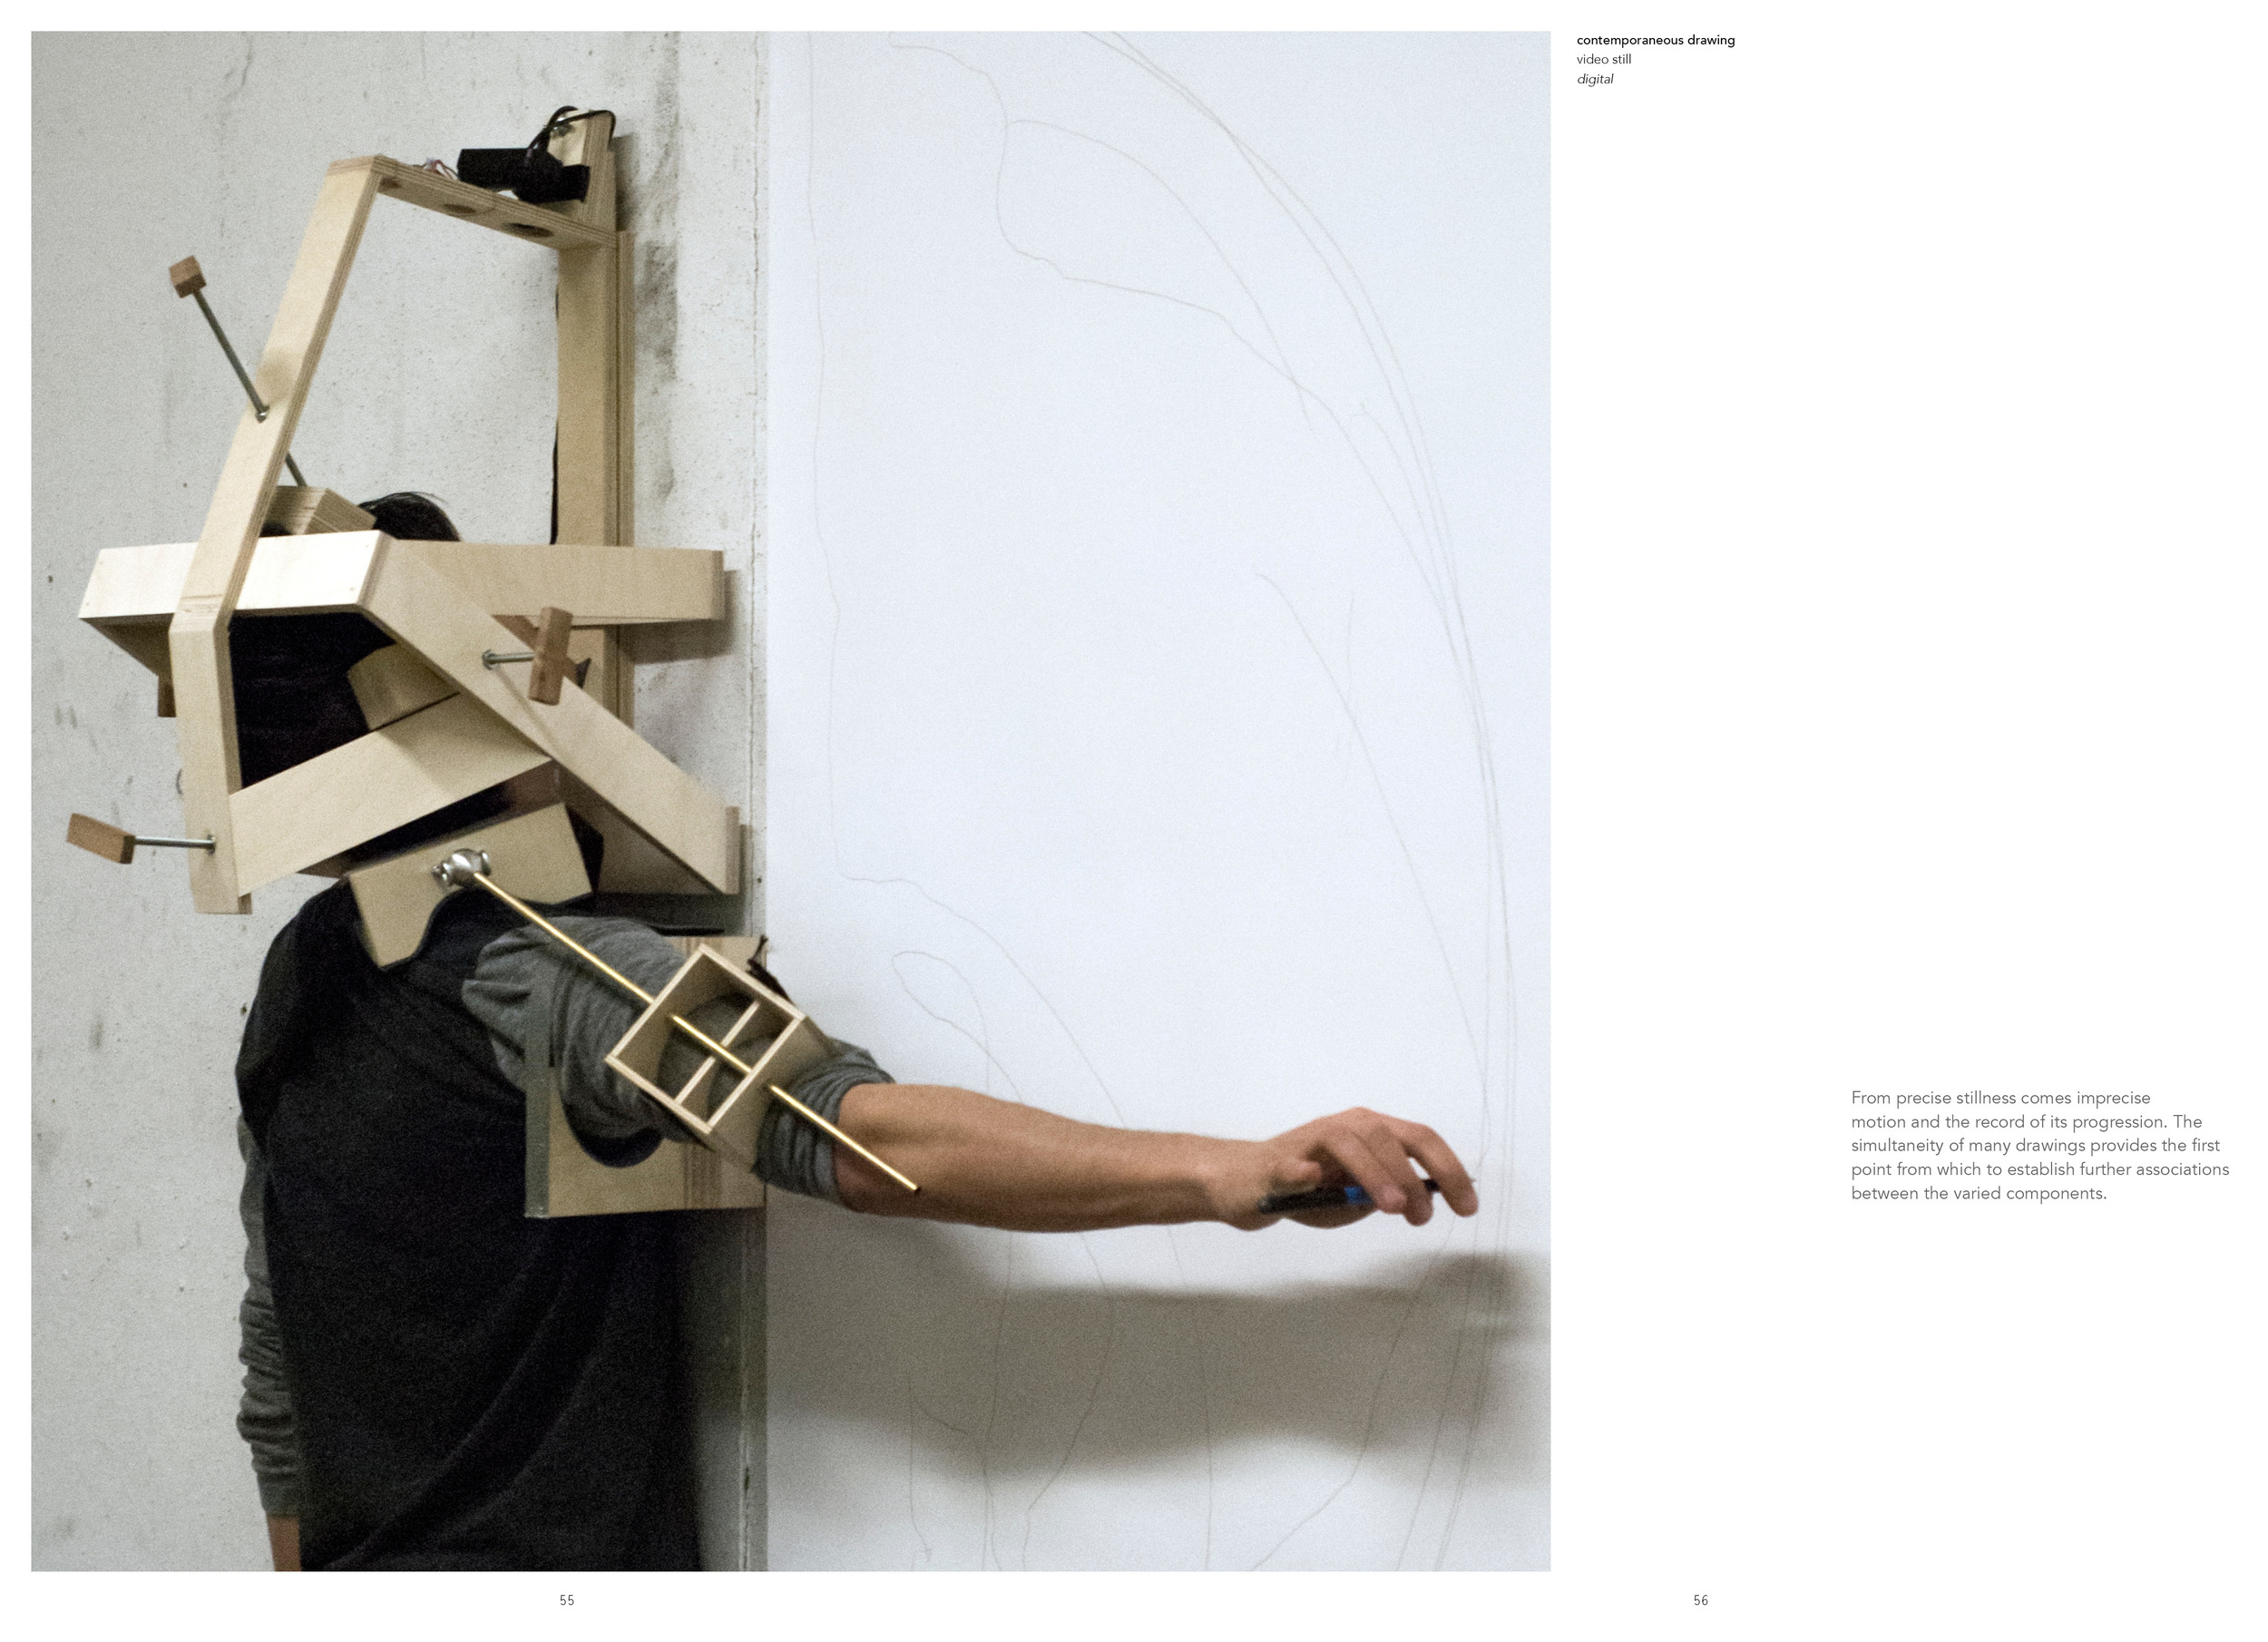 Prosthesis - RISD MArch Thesis - Burgess Voshell34.jpg